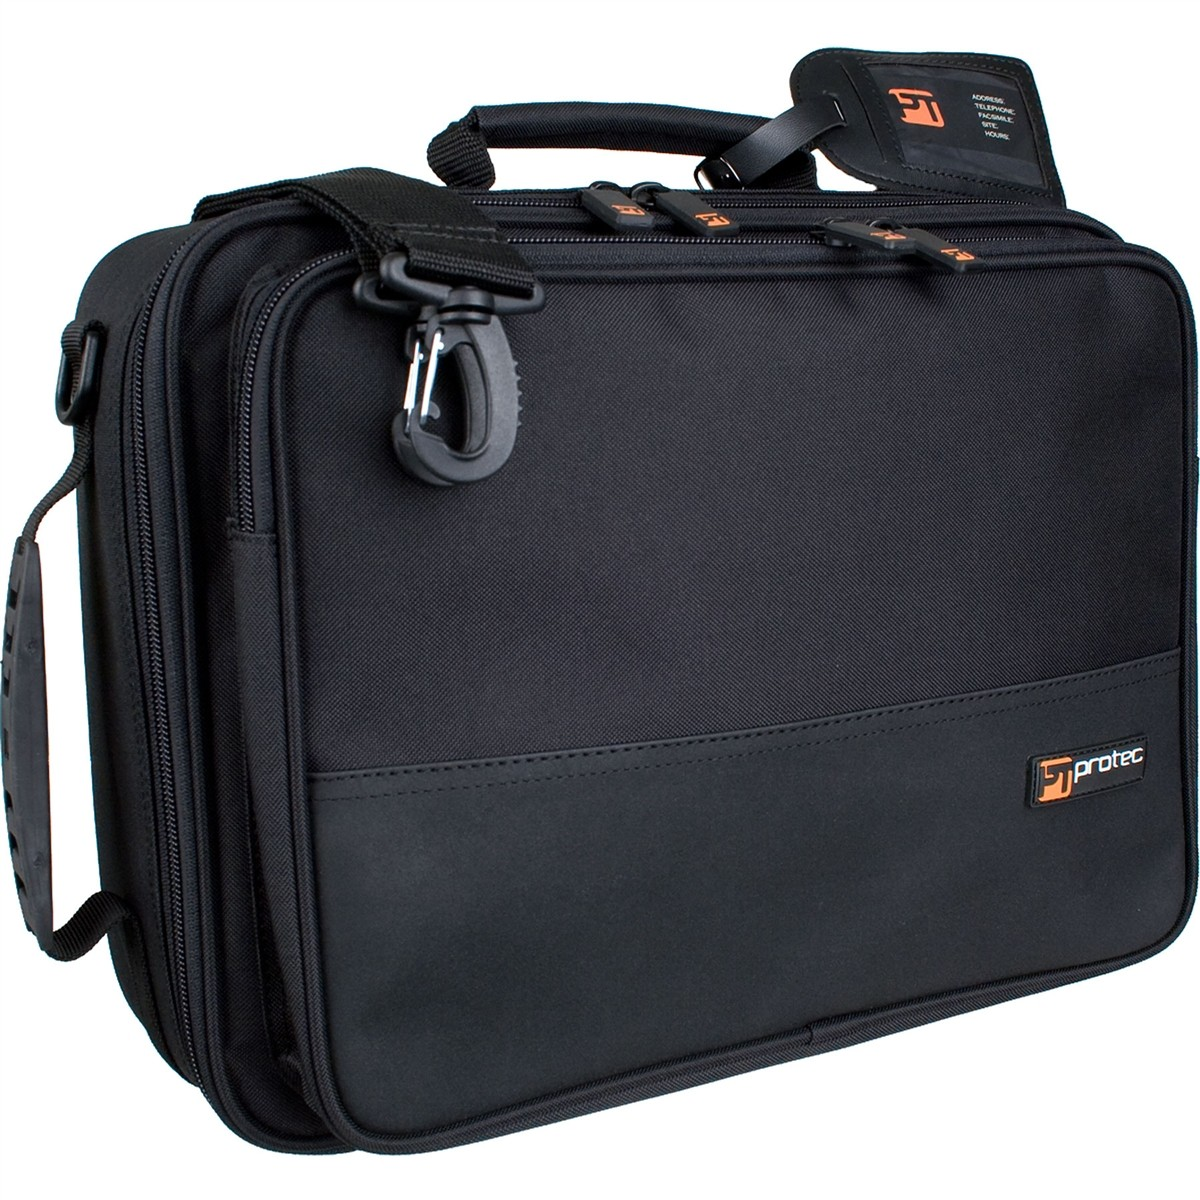 Protec Deluxe Clarinet / Oboe Case Cover (A307)